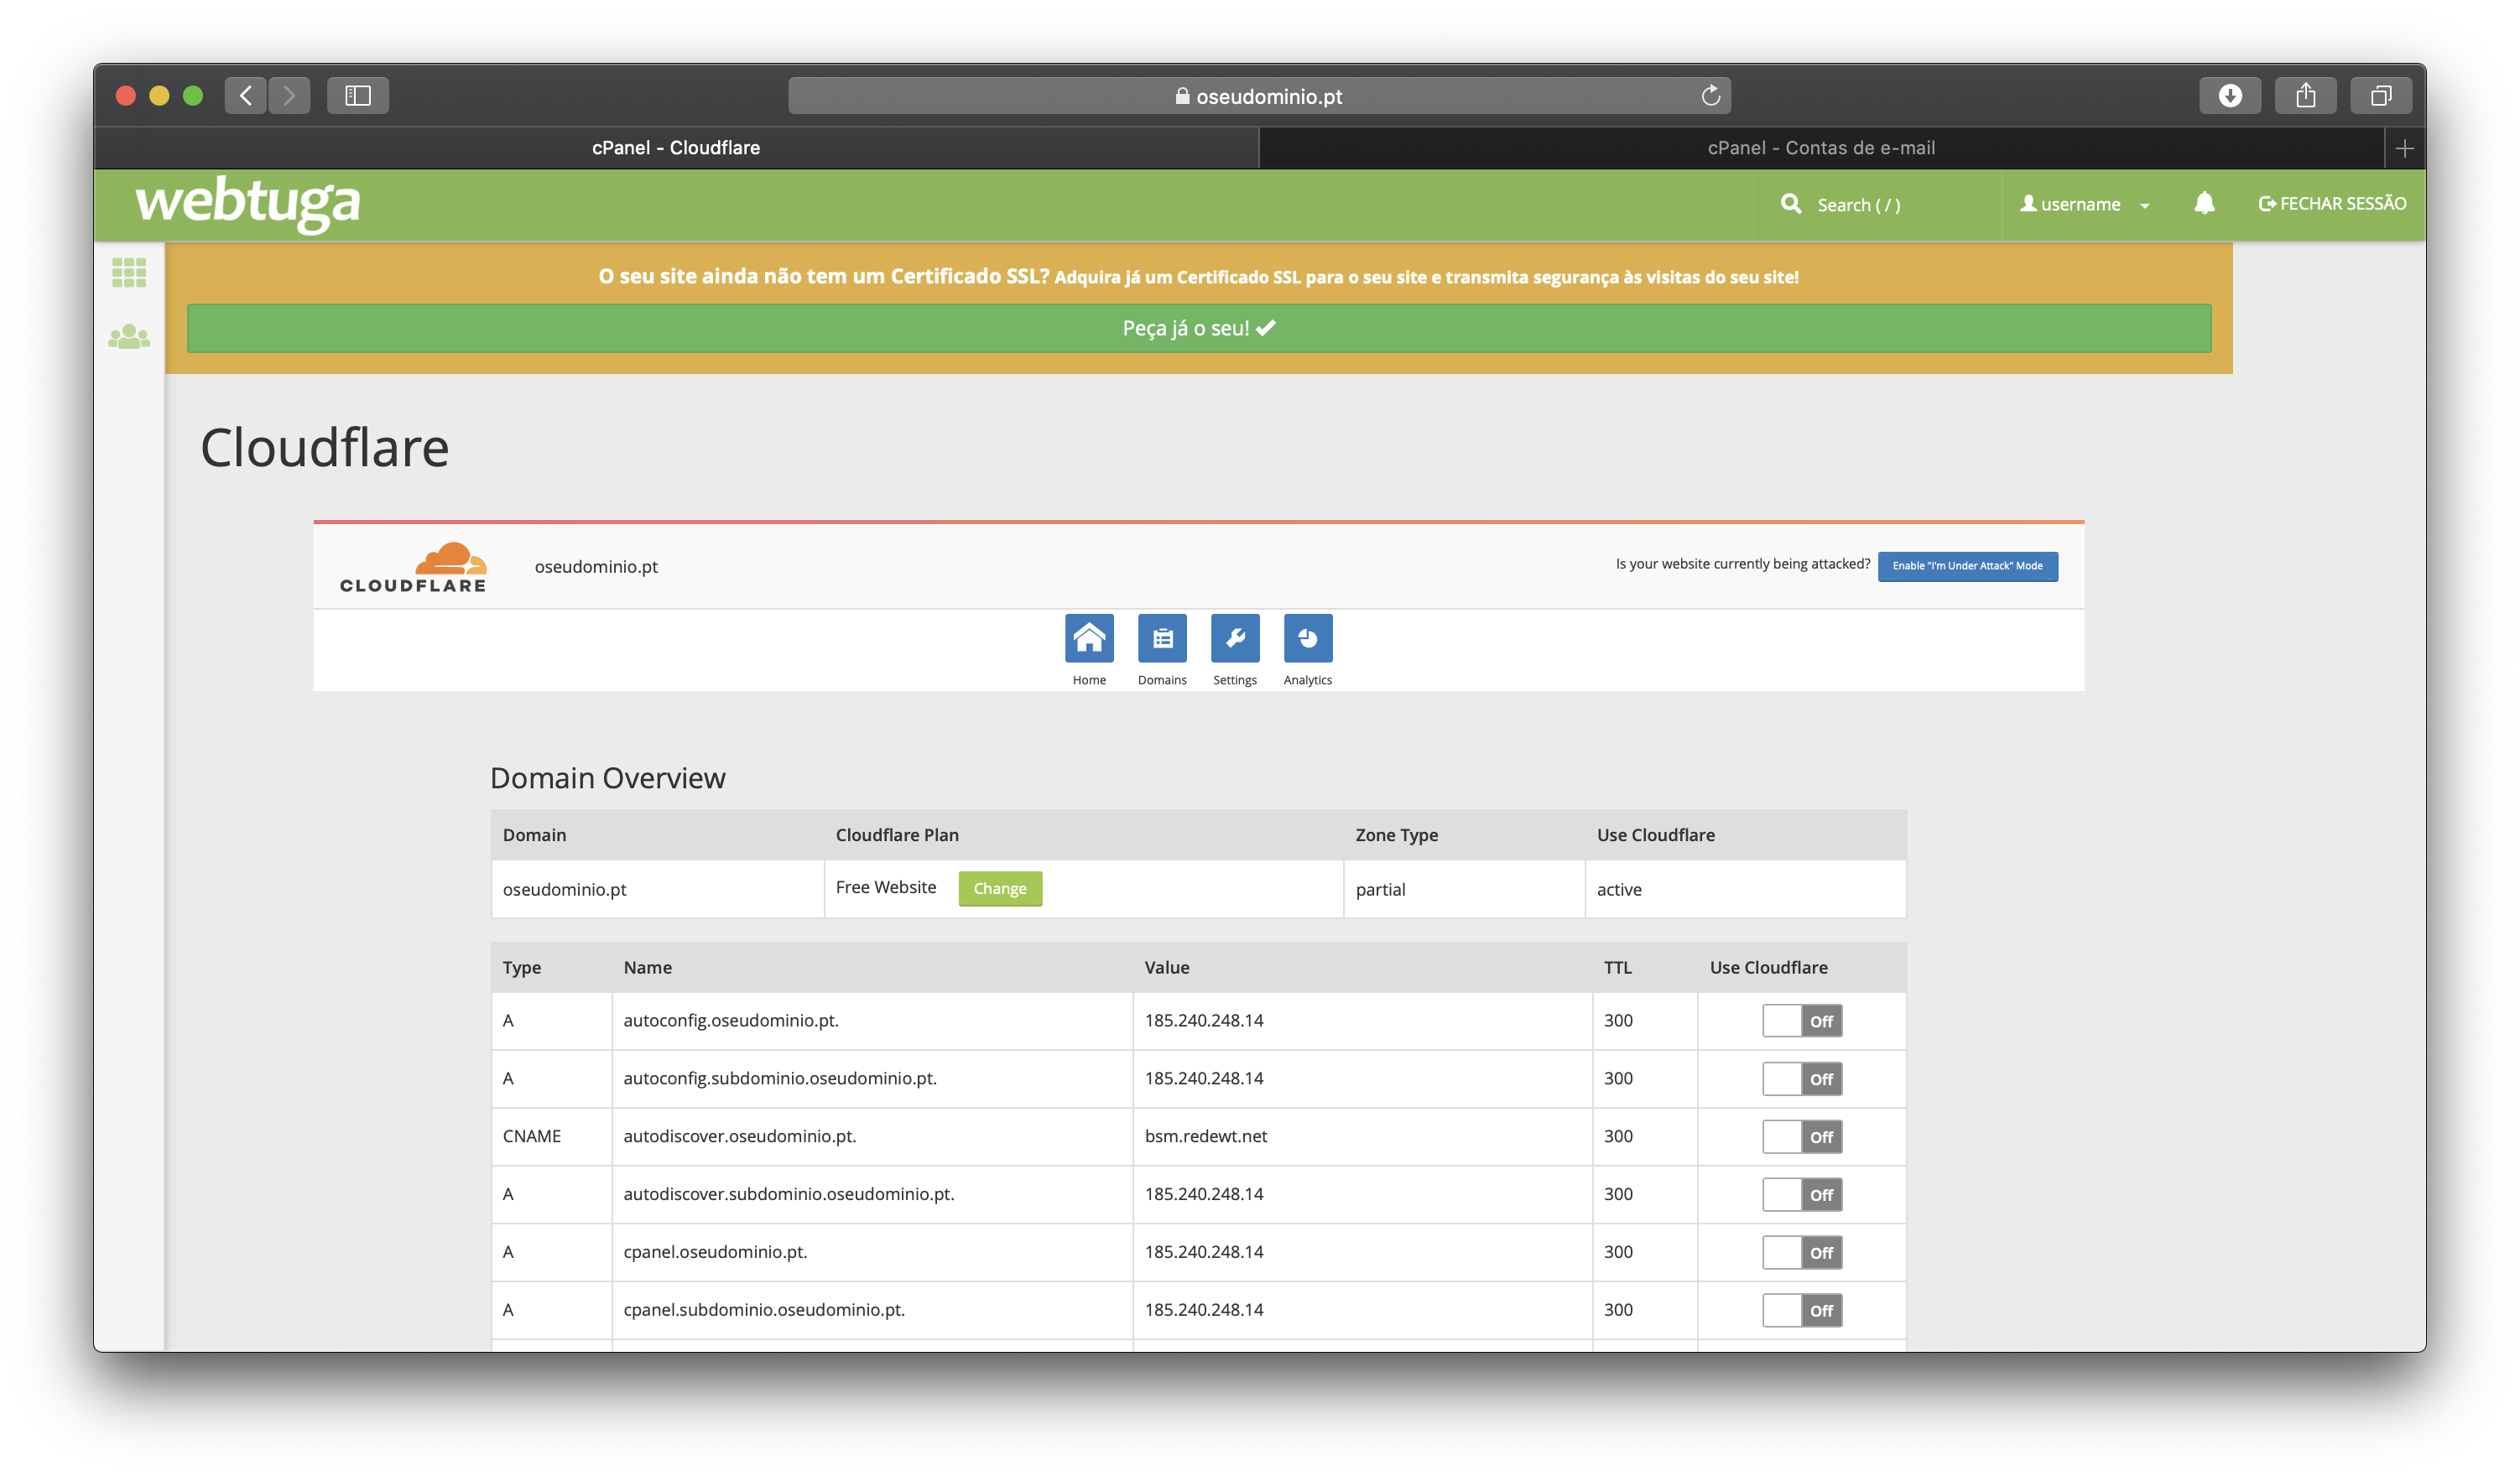 cloudflare-activar-cpanel-6.png